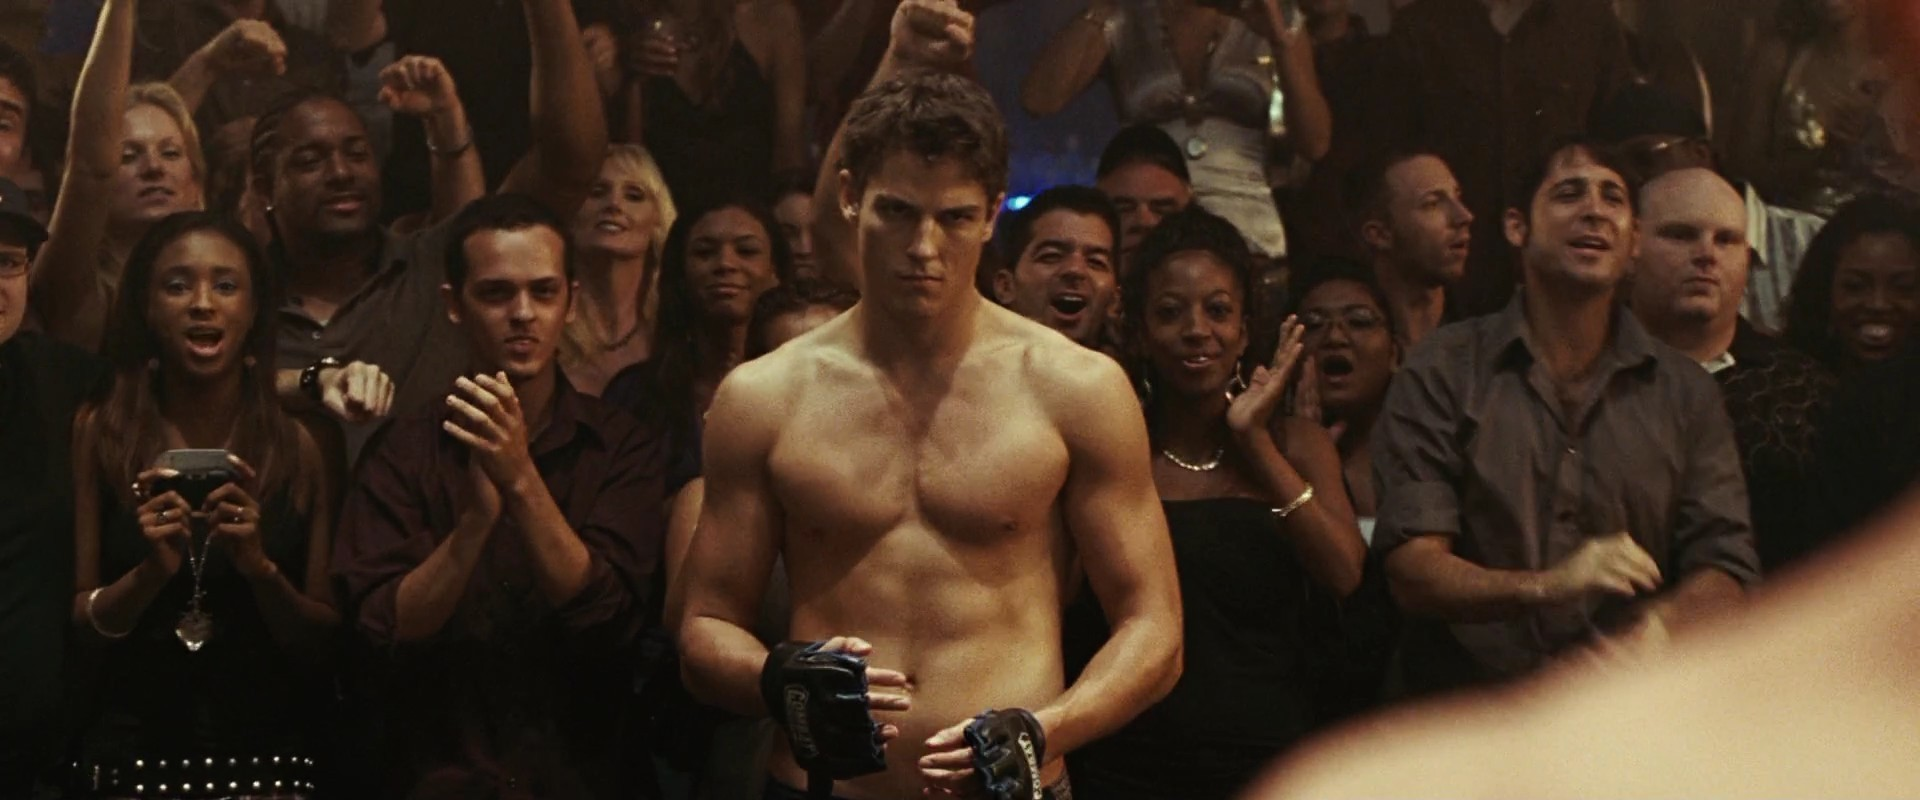 Free Download Sean Faris Images Never Back Down Hd Wallpaper And Background 1920x800 For Your Desktop Mobile Tablet Explore 21 Never Back Down Wallpapers Never Back Down Wallpapers Never